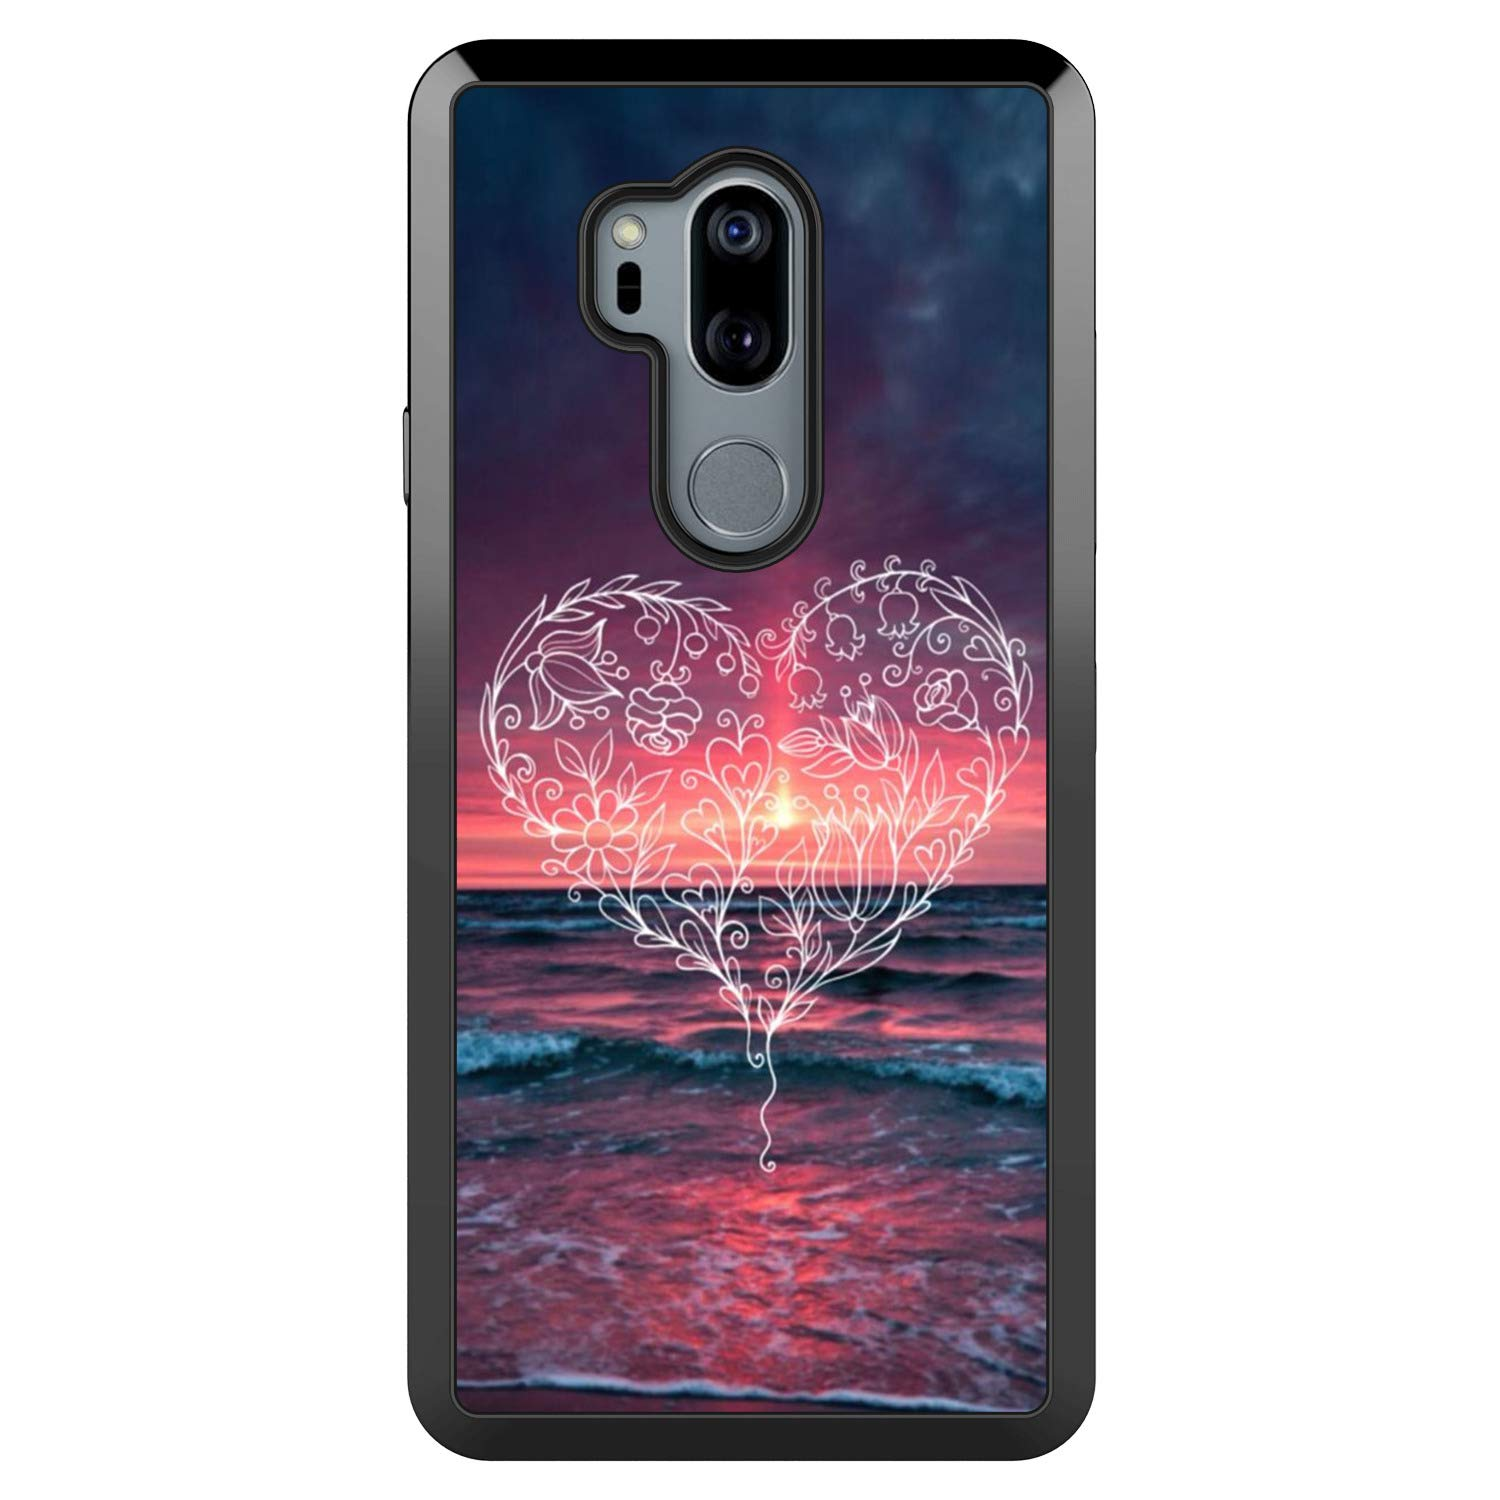 Heart Pattern Totem LG G7 ThinQ Case Creative Personality Case Phone Unique for LG G7 ThinQ